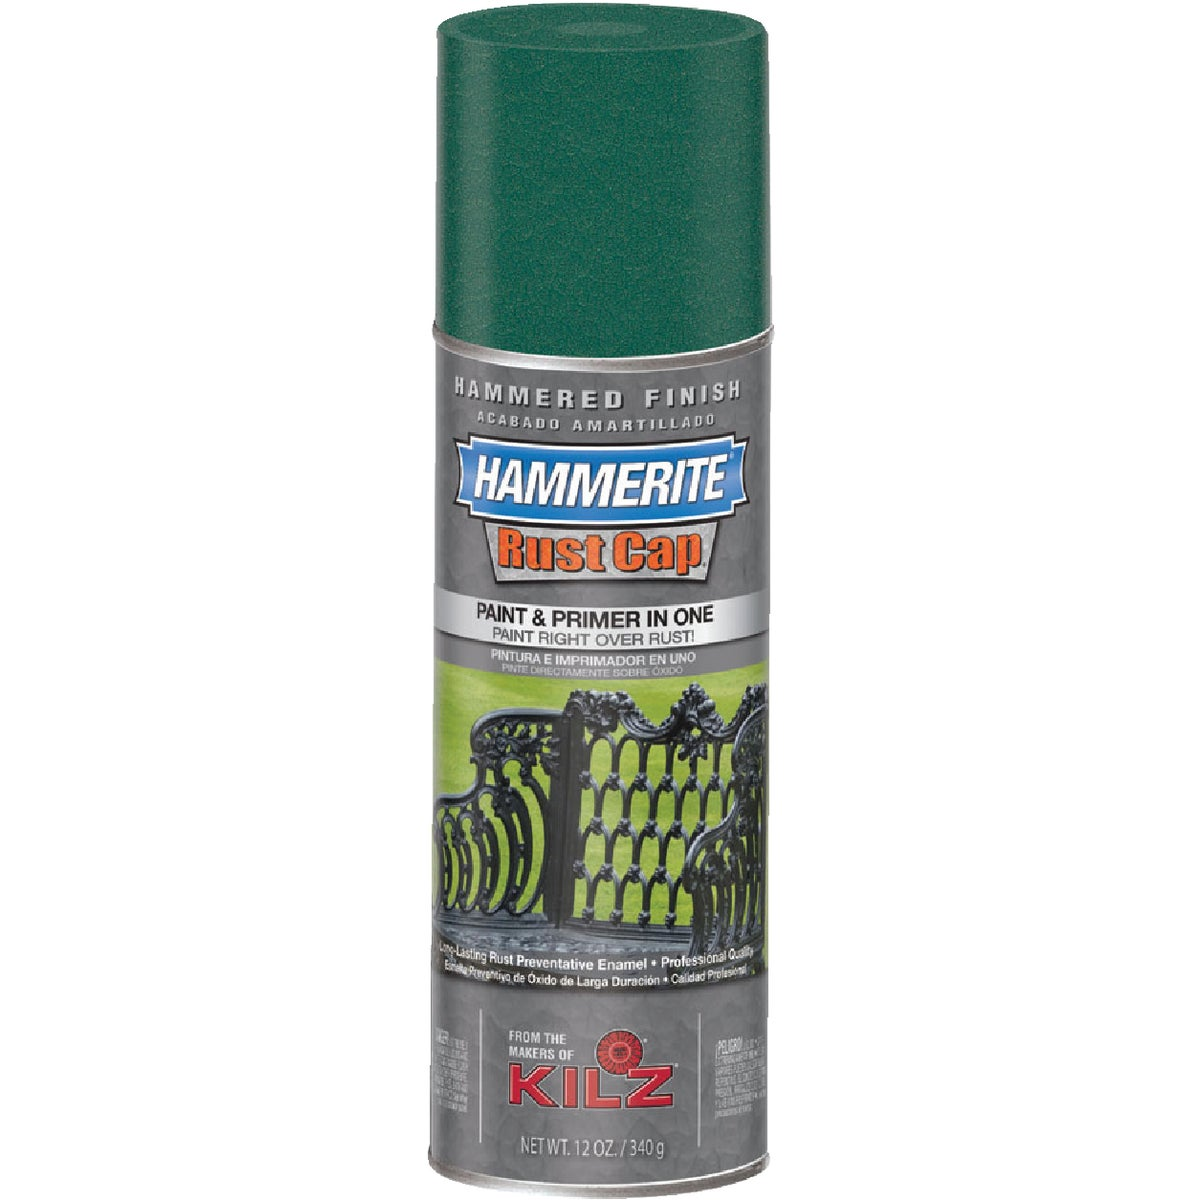 D GRN HAMMRD SPRAY PAINT - 41165 by Masterchem